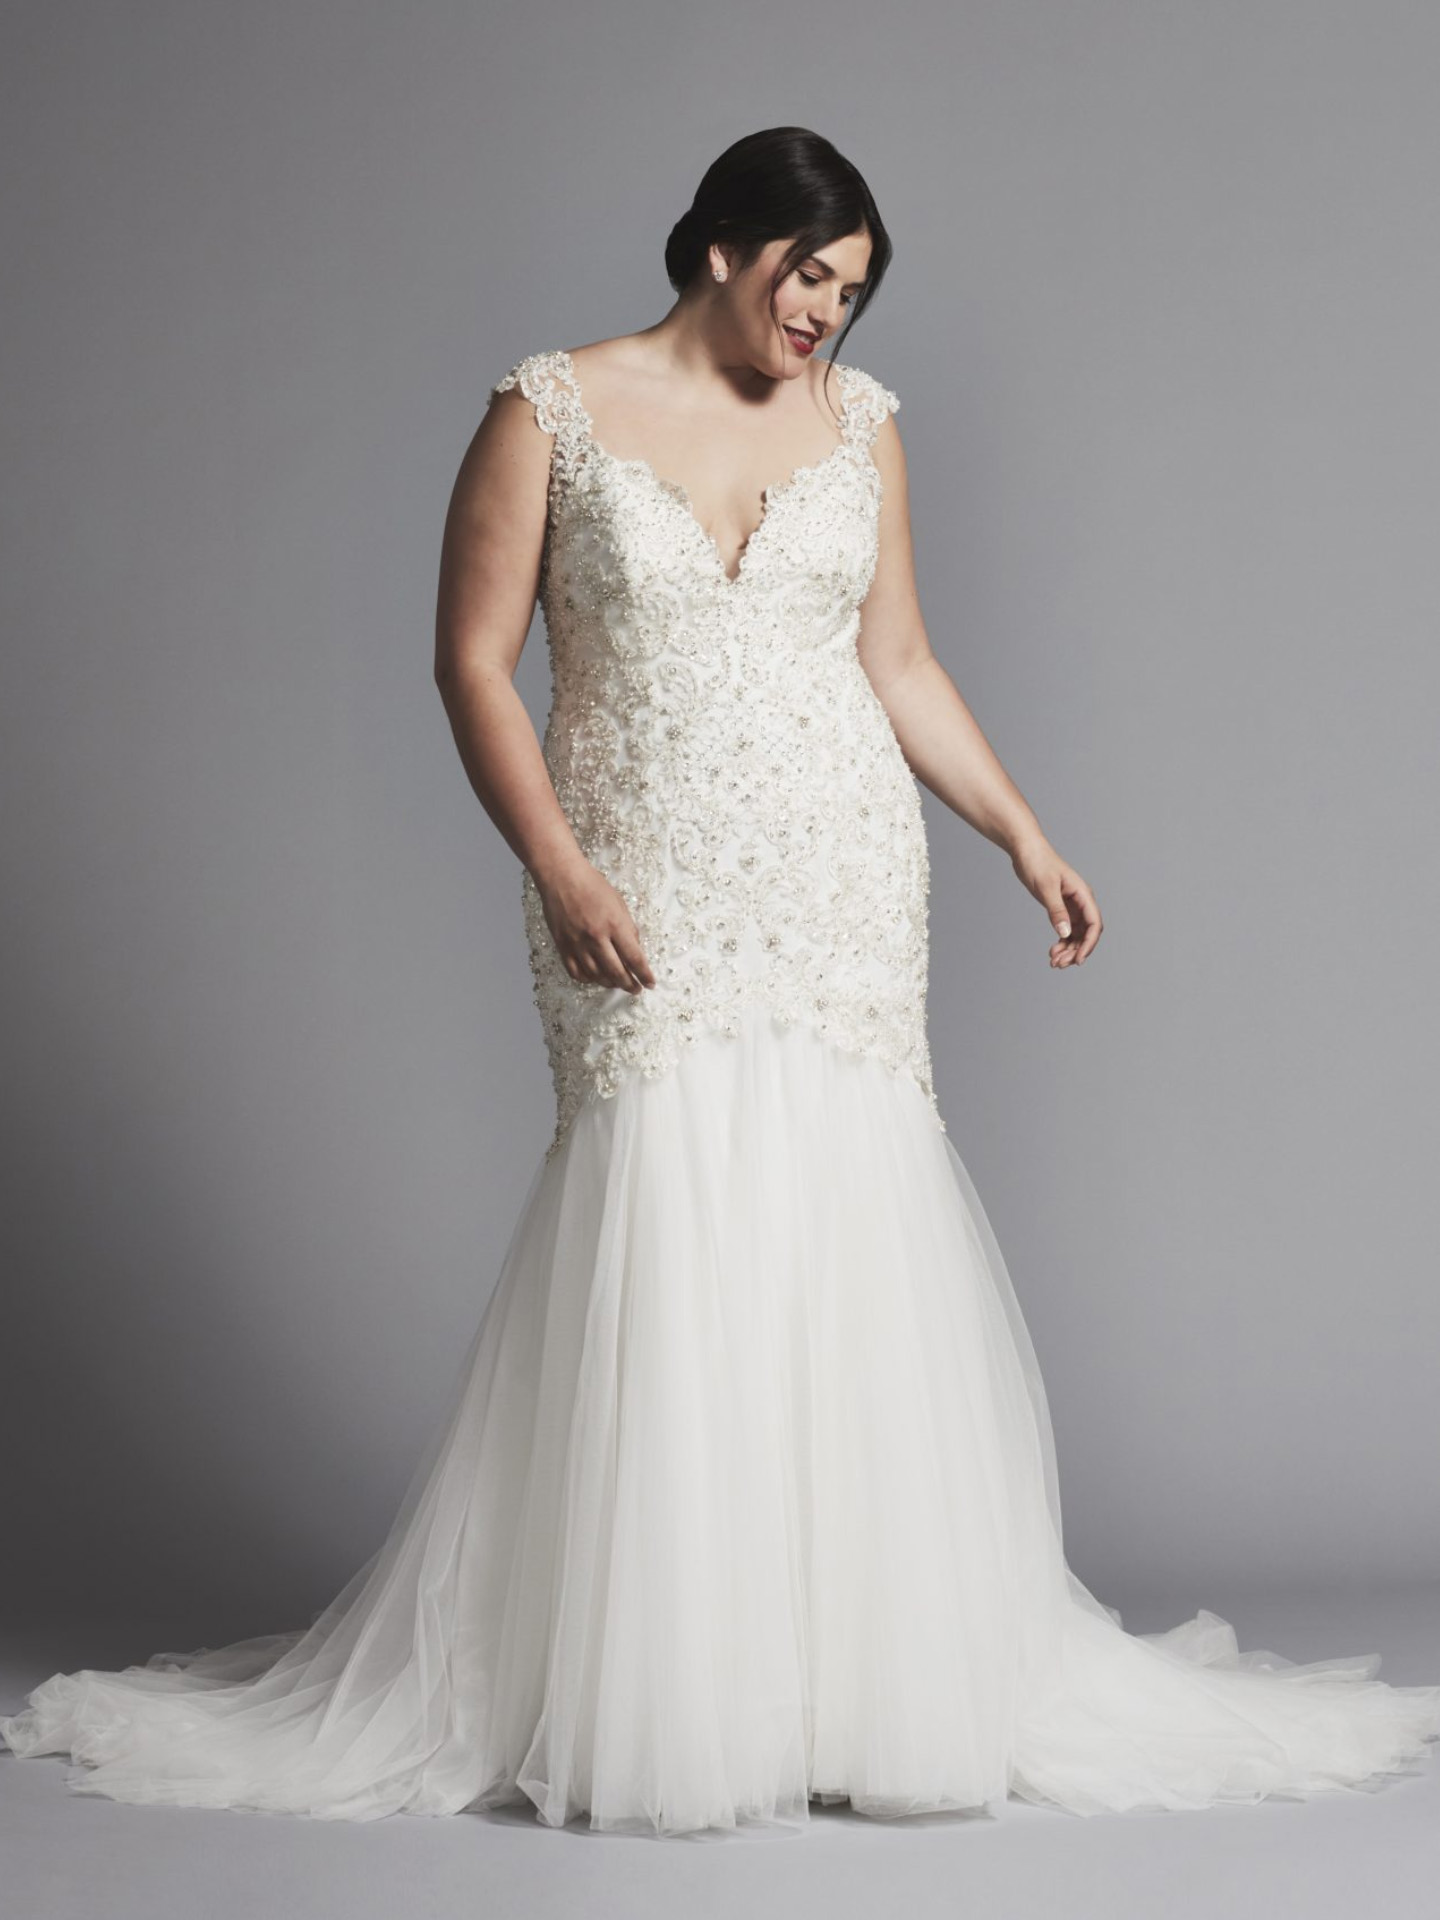 danielle-caprese-mermaid-wedding-dress-with-beaded-bodice-and-tulle-skirt-113180xs